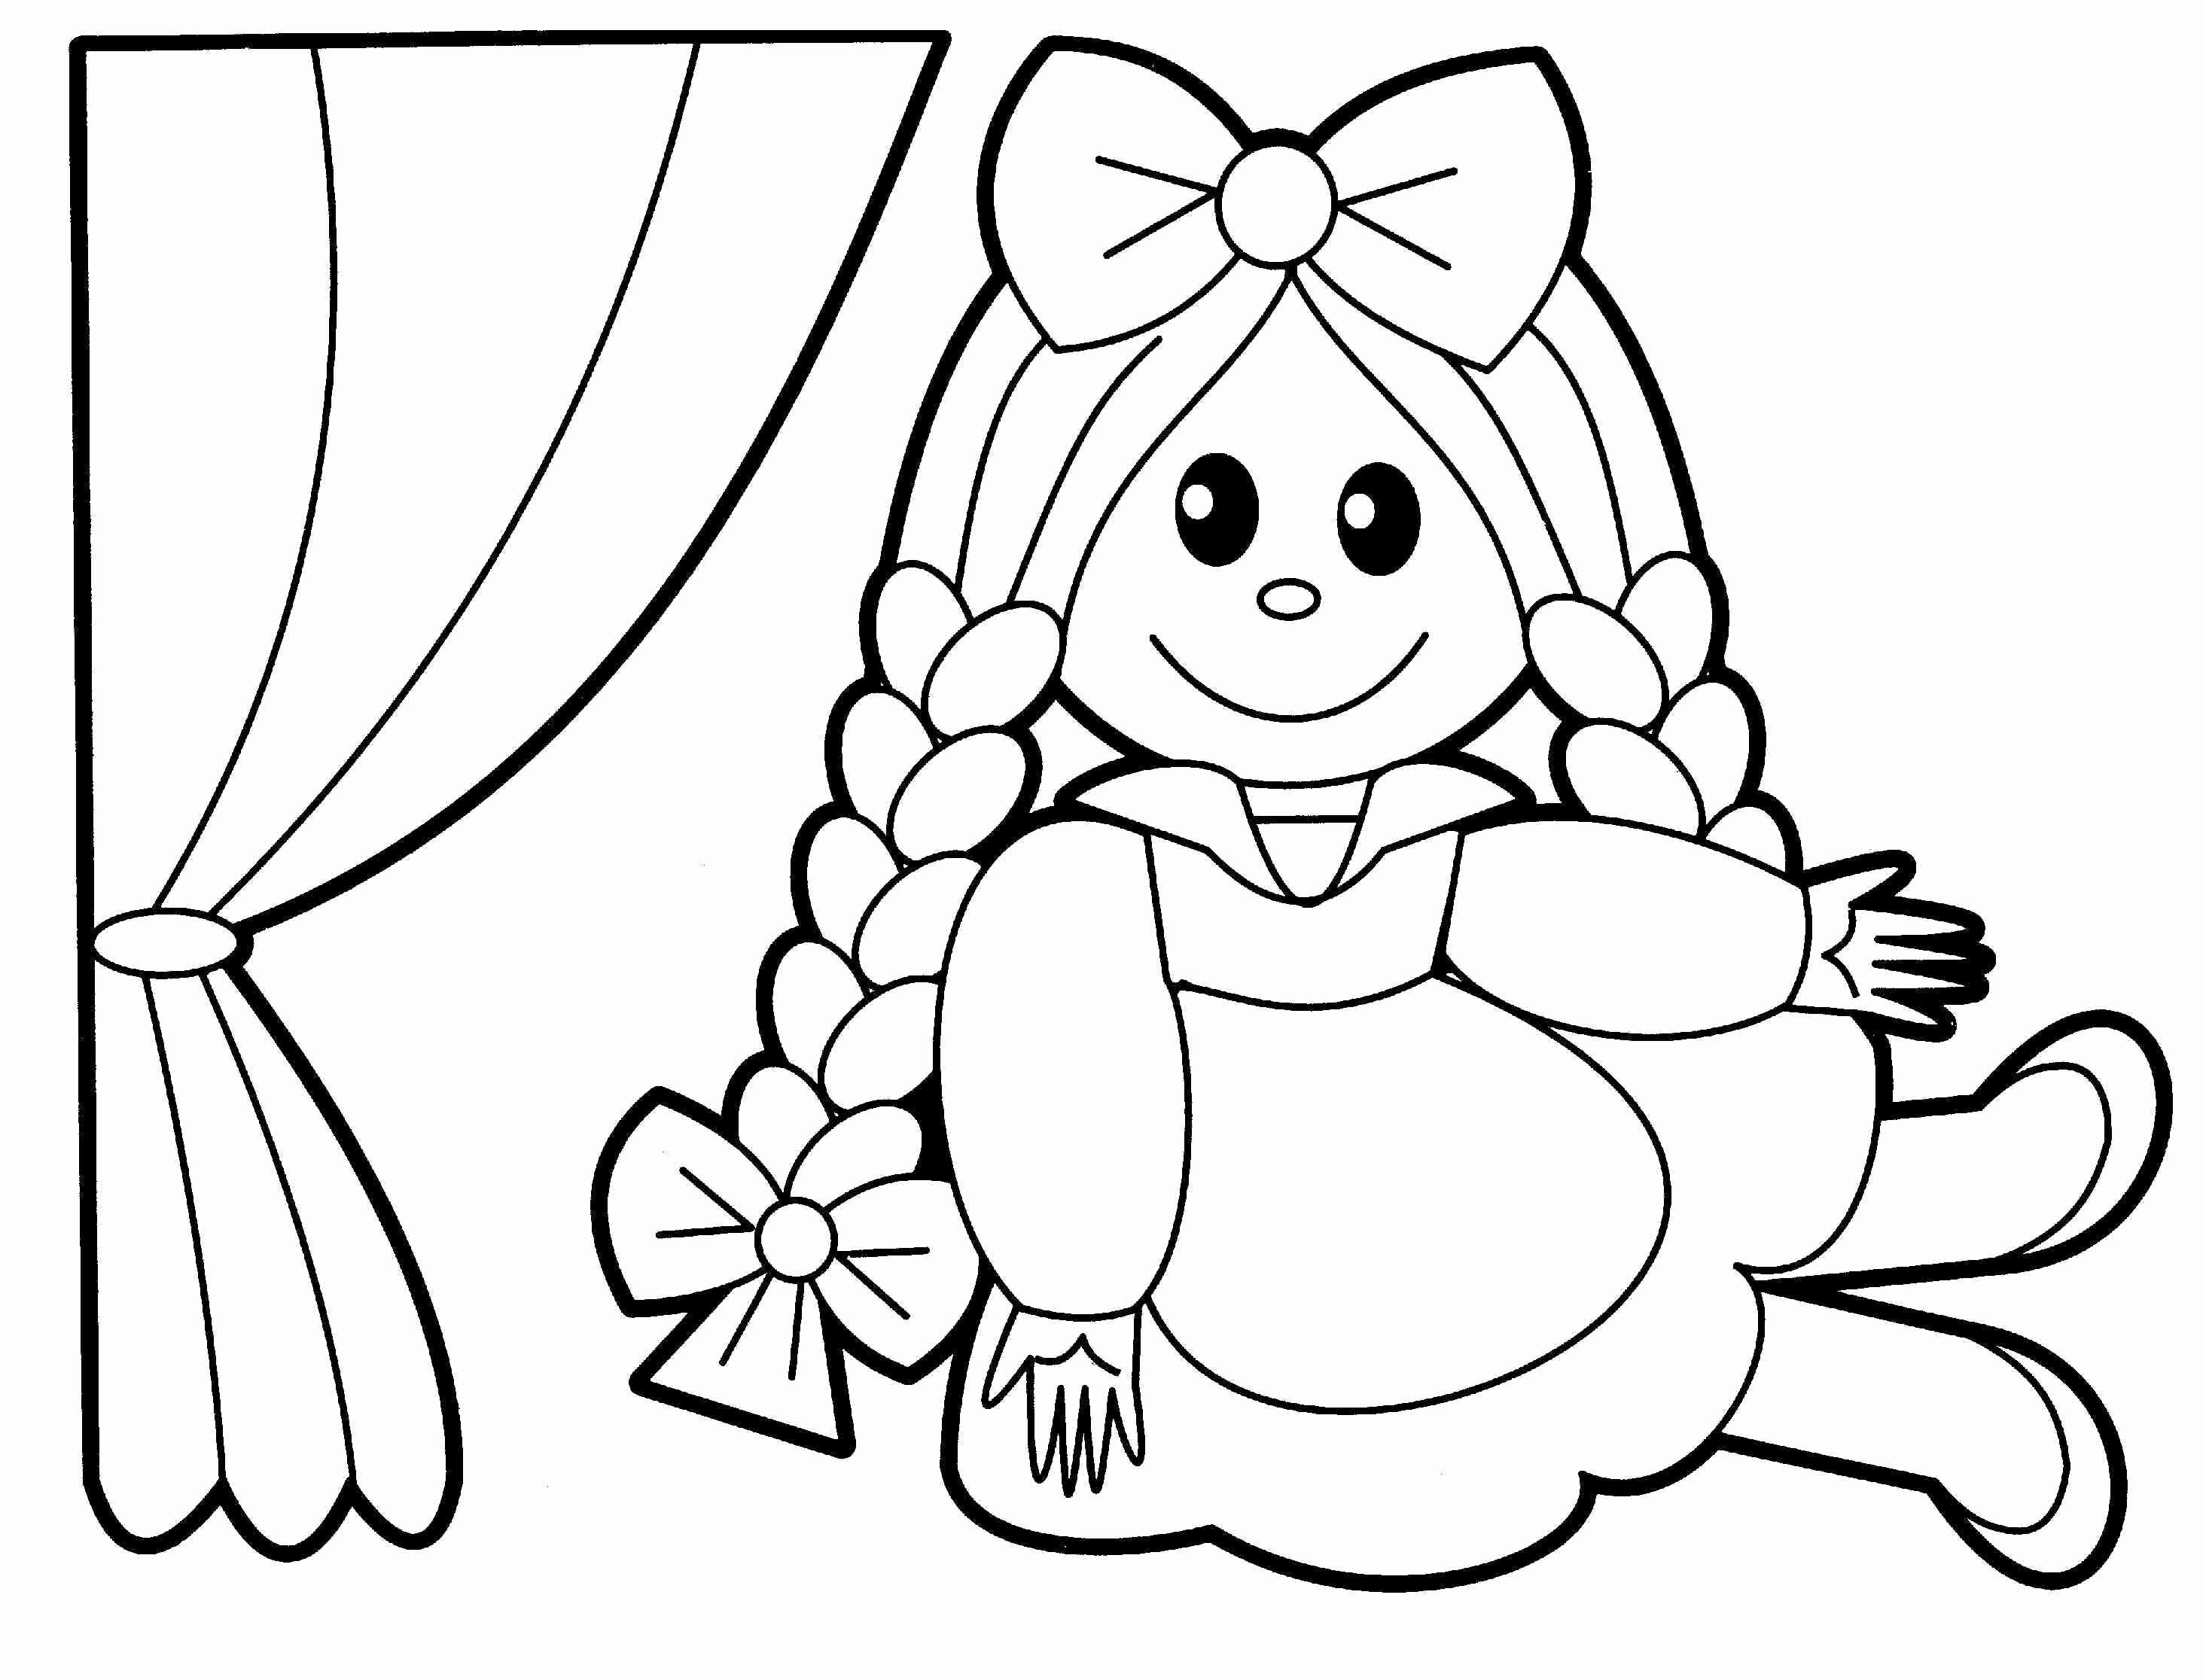 Baby Doll Coloring Page Fresh Coloring Pages Cartoon Baby Doll Coloring Home Monster Coloring Pages Toy Story Coloring Pages Cartoon Coloring Pages